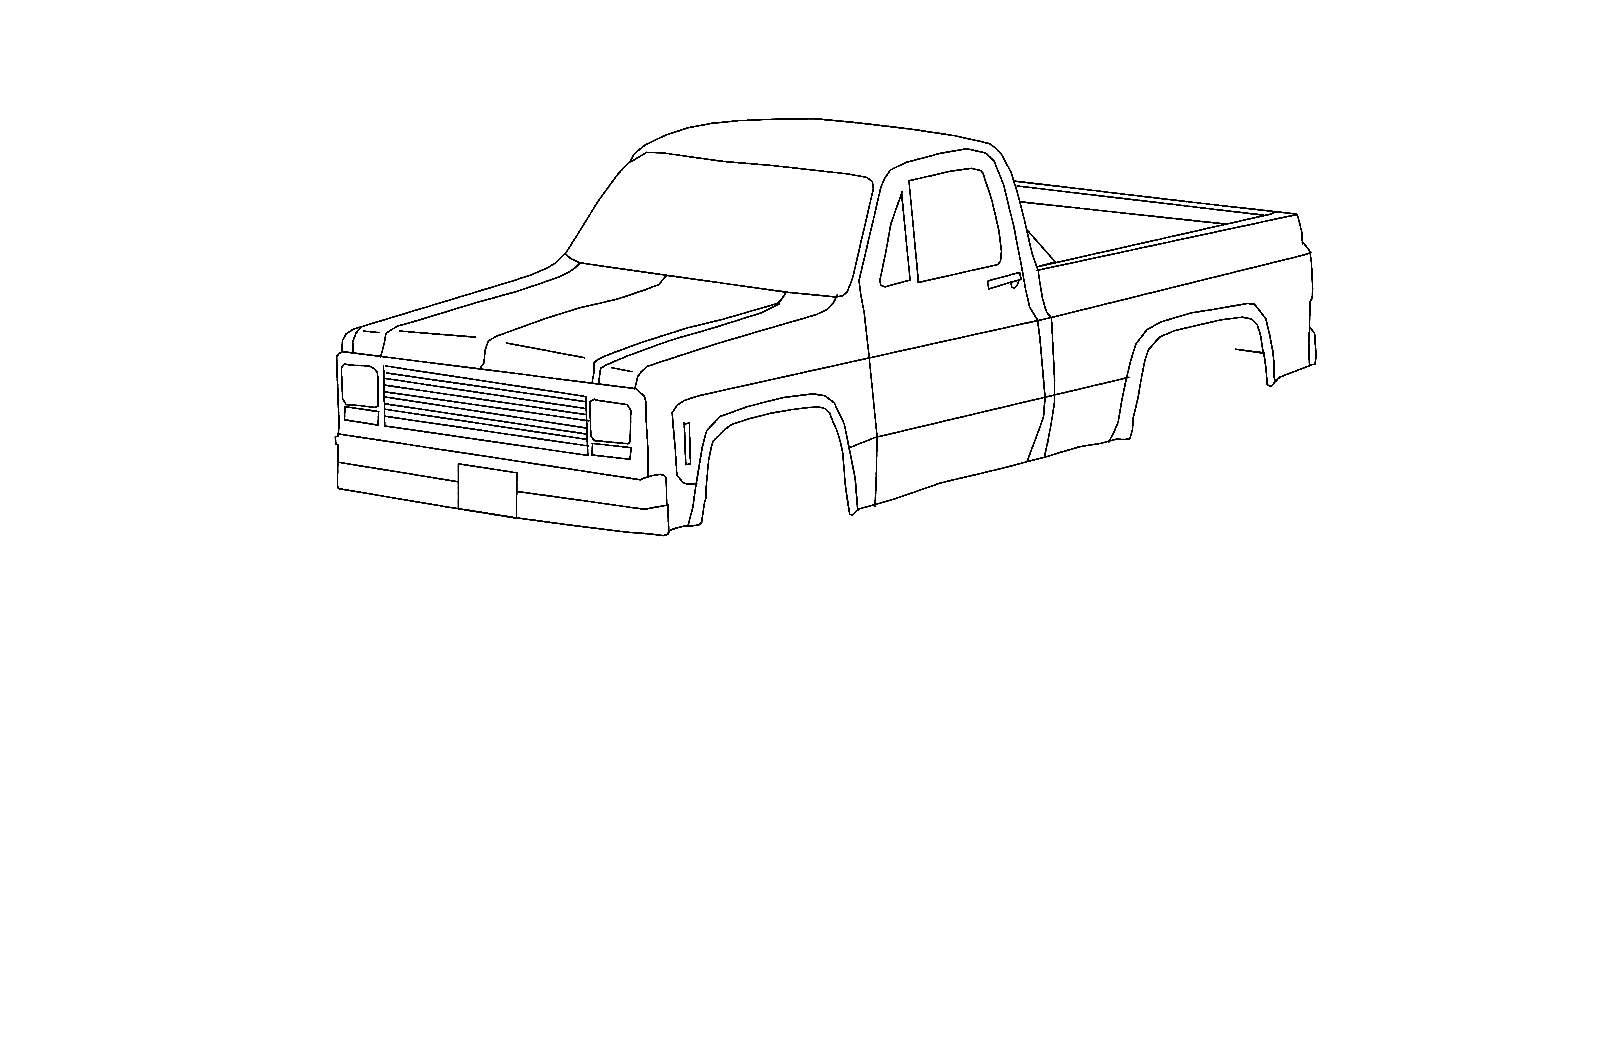 Toyota Ta a as well 465700417697129073 as well 2001 Toyota Ta a 4x4 Diagram moreover Toyota Hilux furthermore F250 F350 Differences. on toyota tacoma lifted trucks